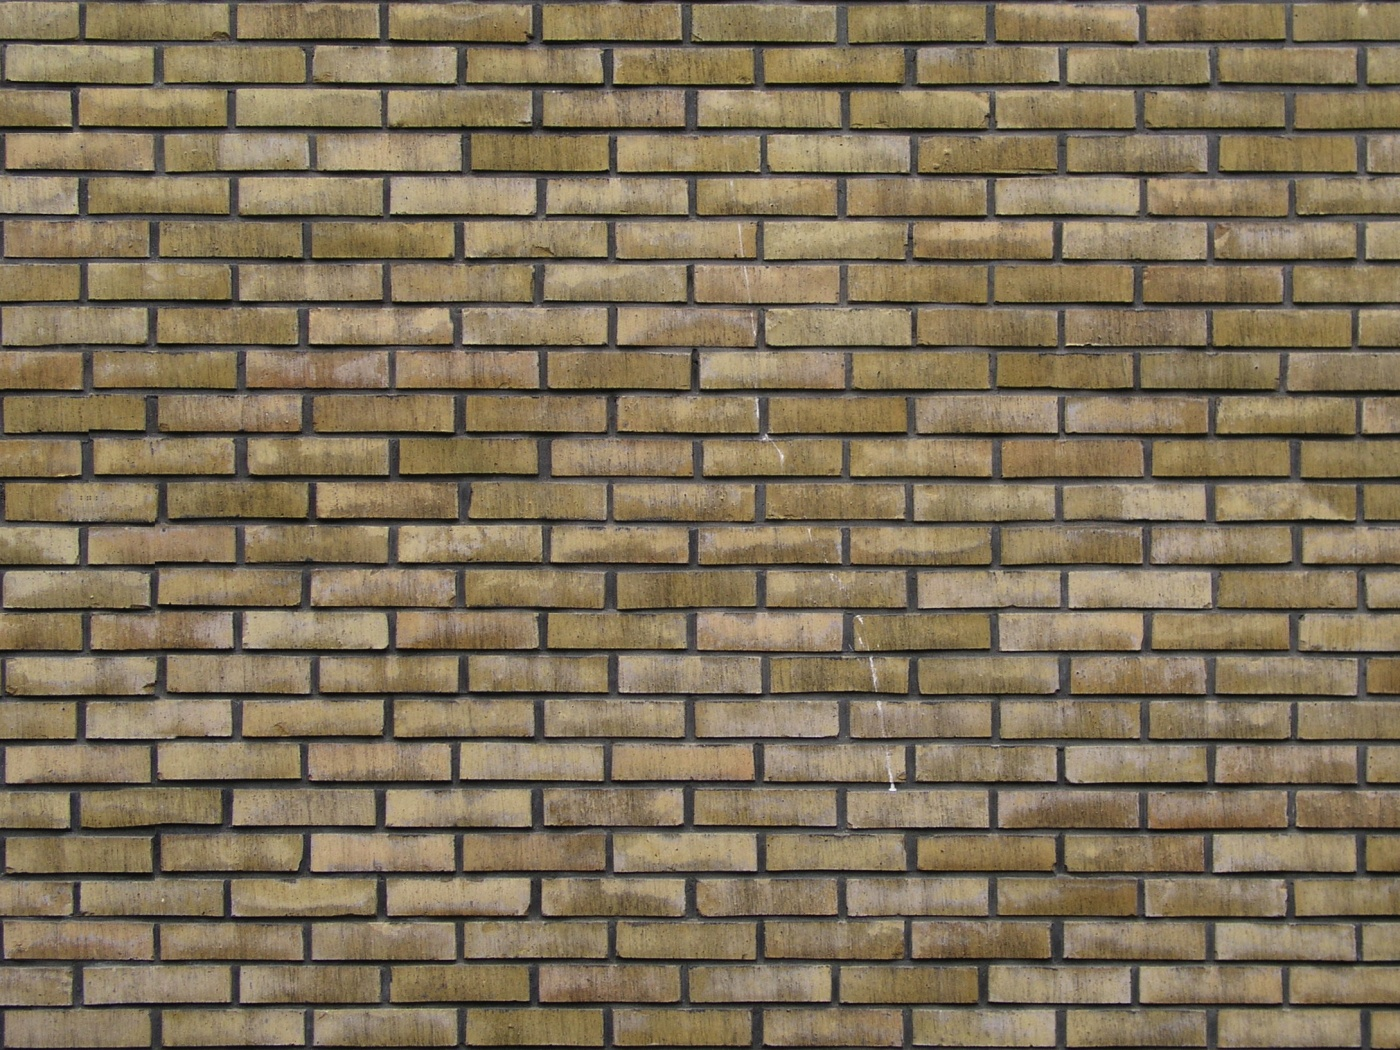 Bricks Texture Wall Decorative Brick Download